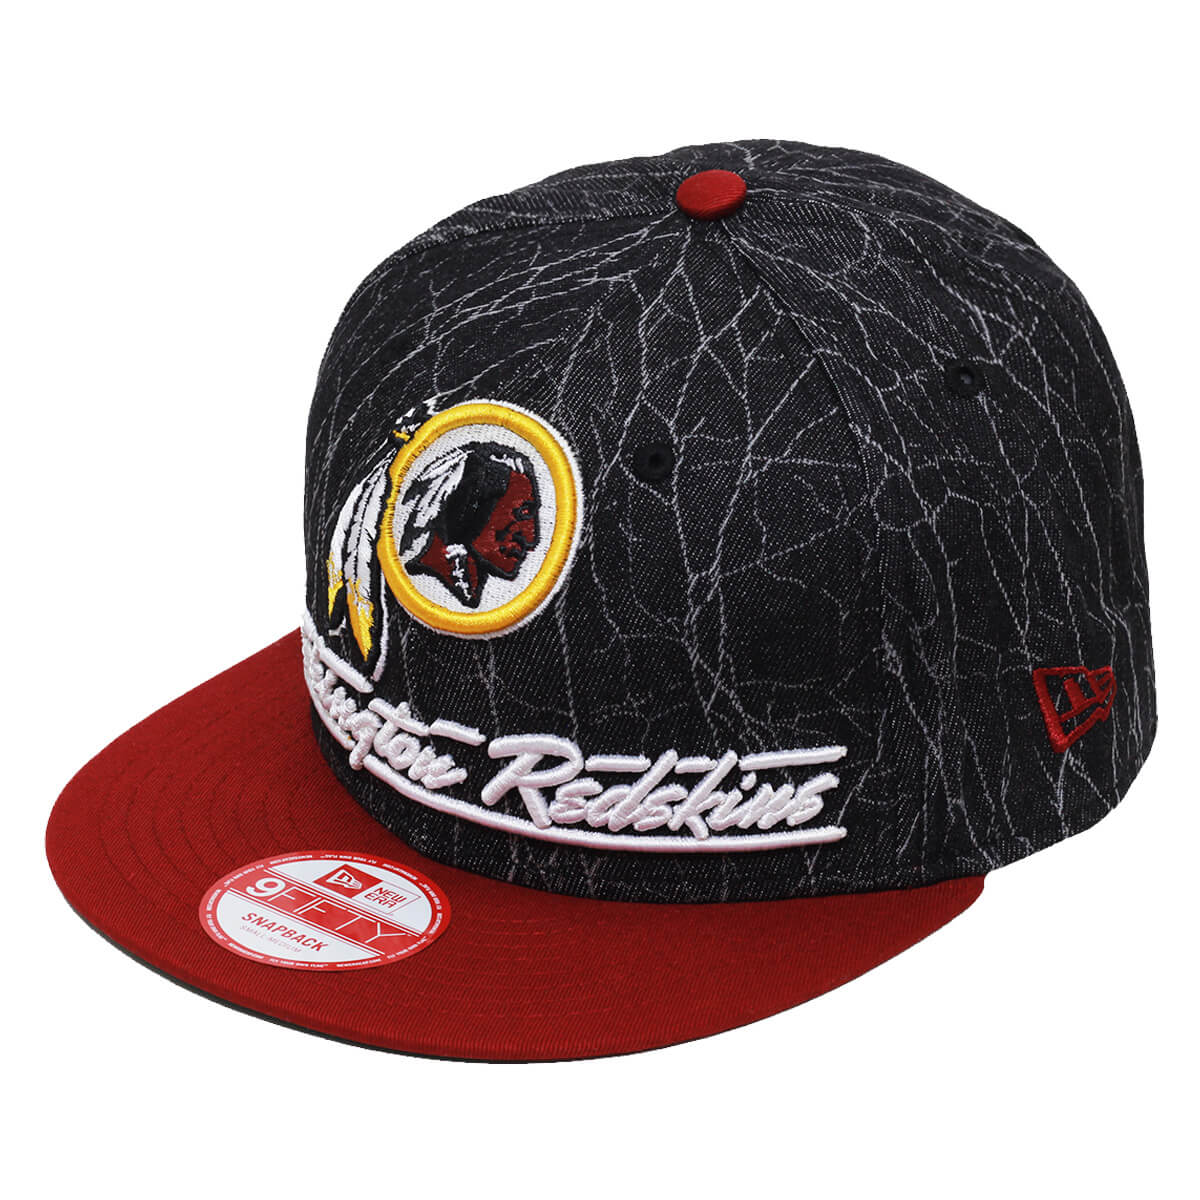 Boné New Era Aba Reta 950 SN NFL Redskins Lightning